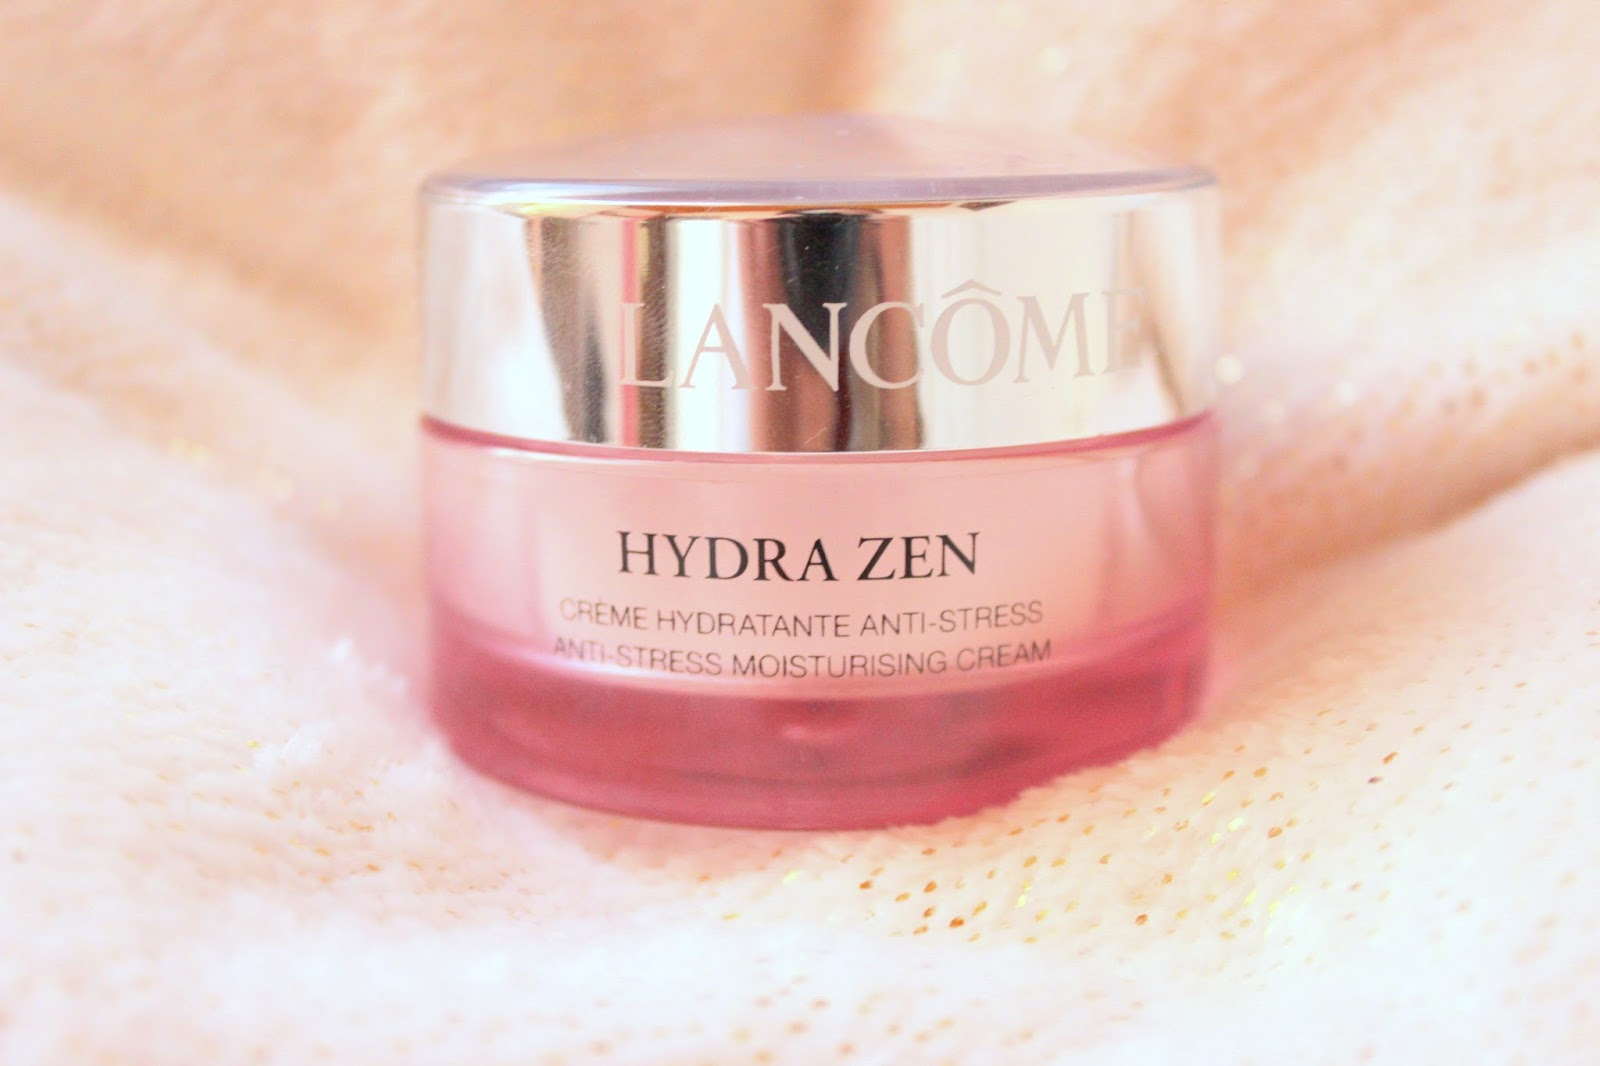 anti-stress creme von lancome review